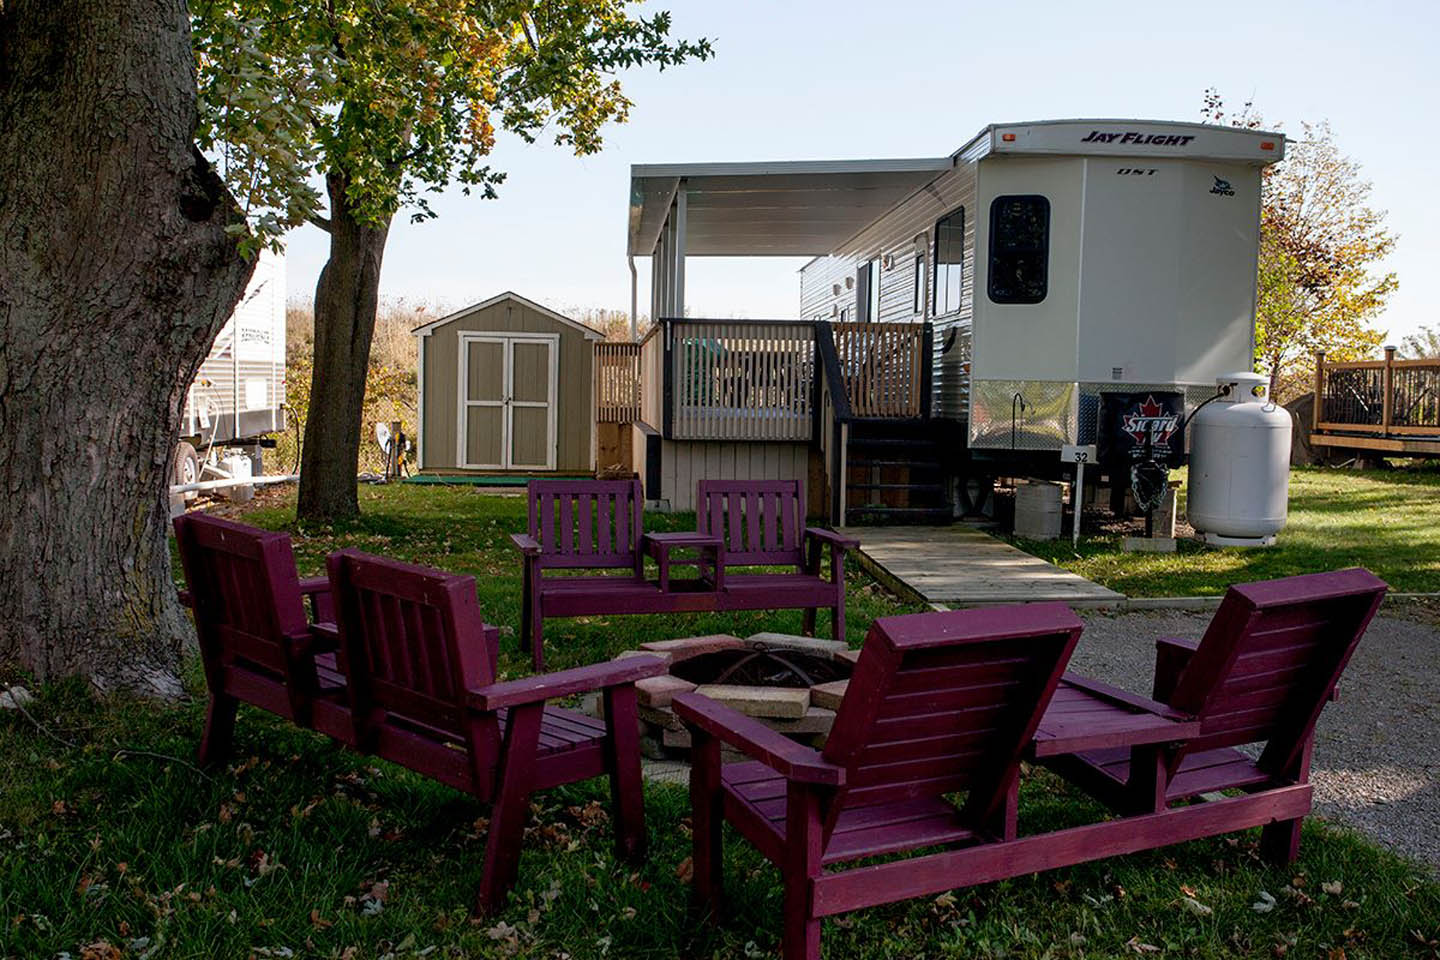 Olympia Village RV Park & Campground